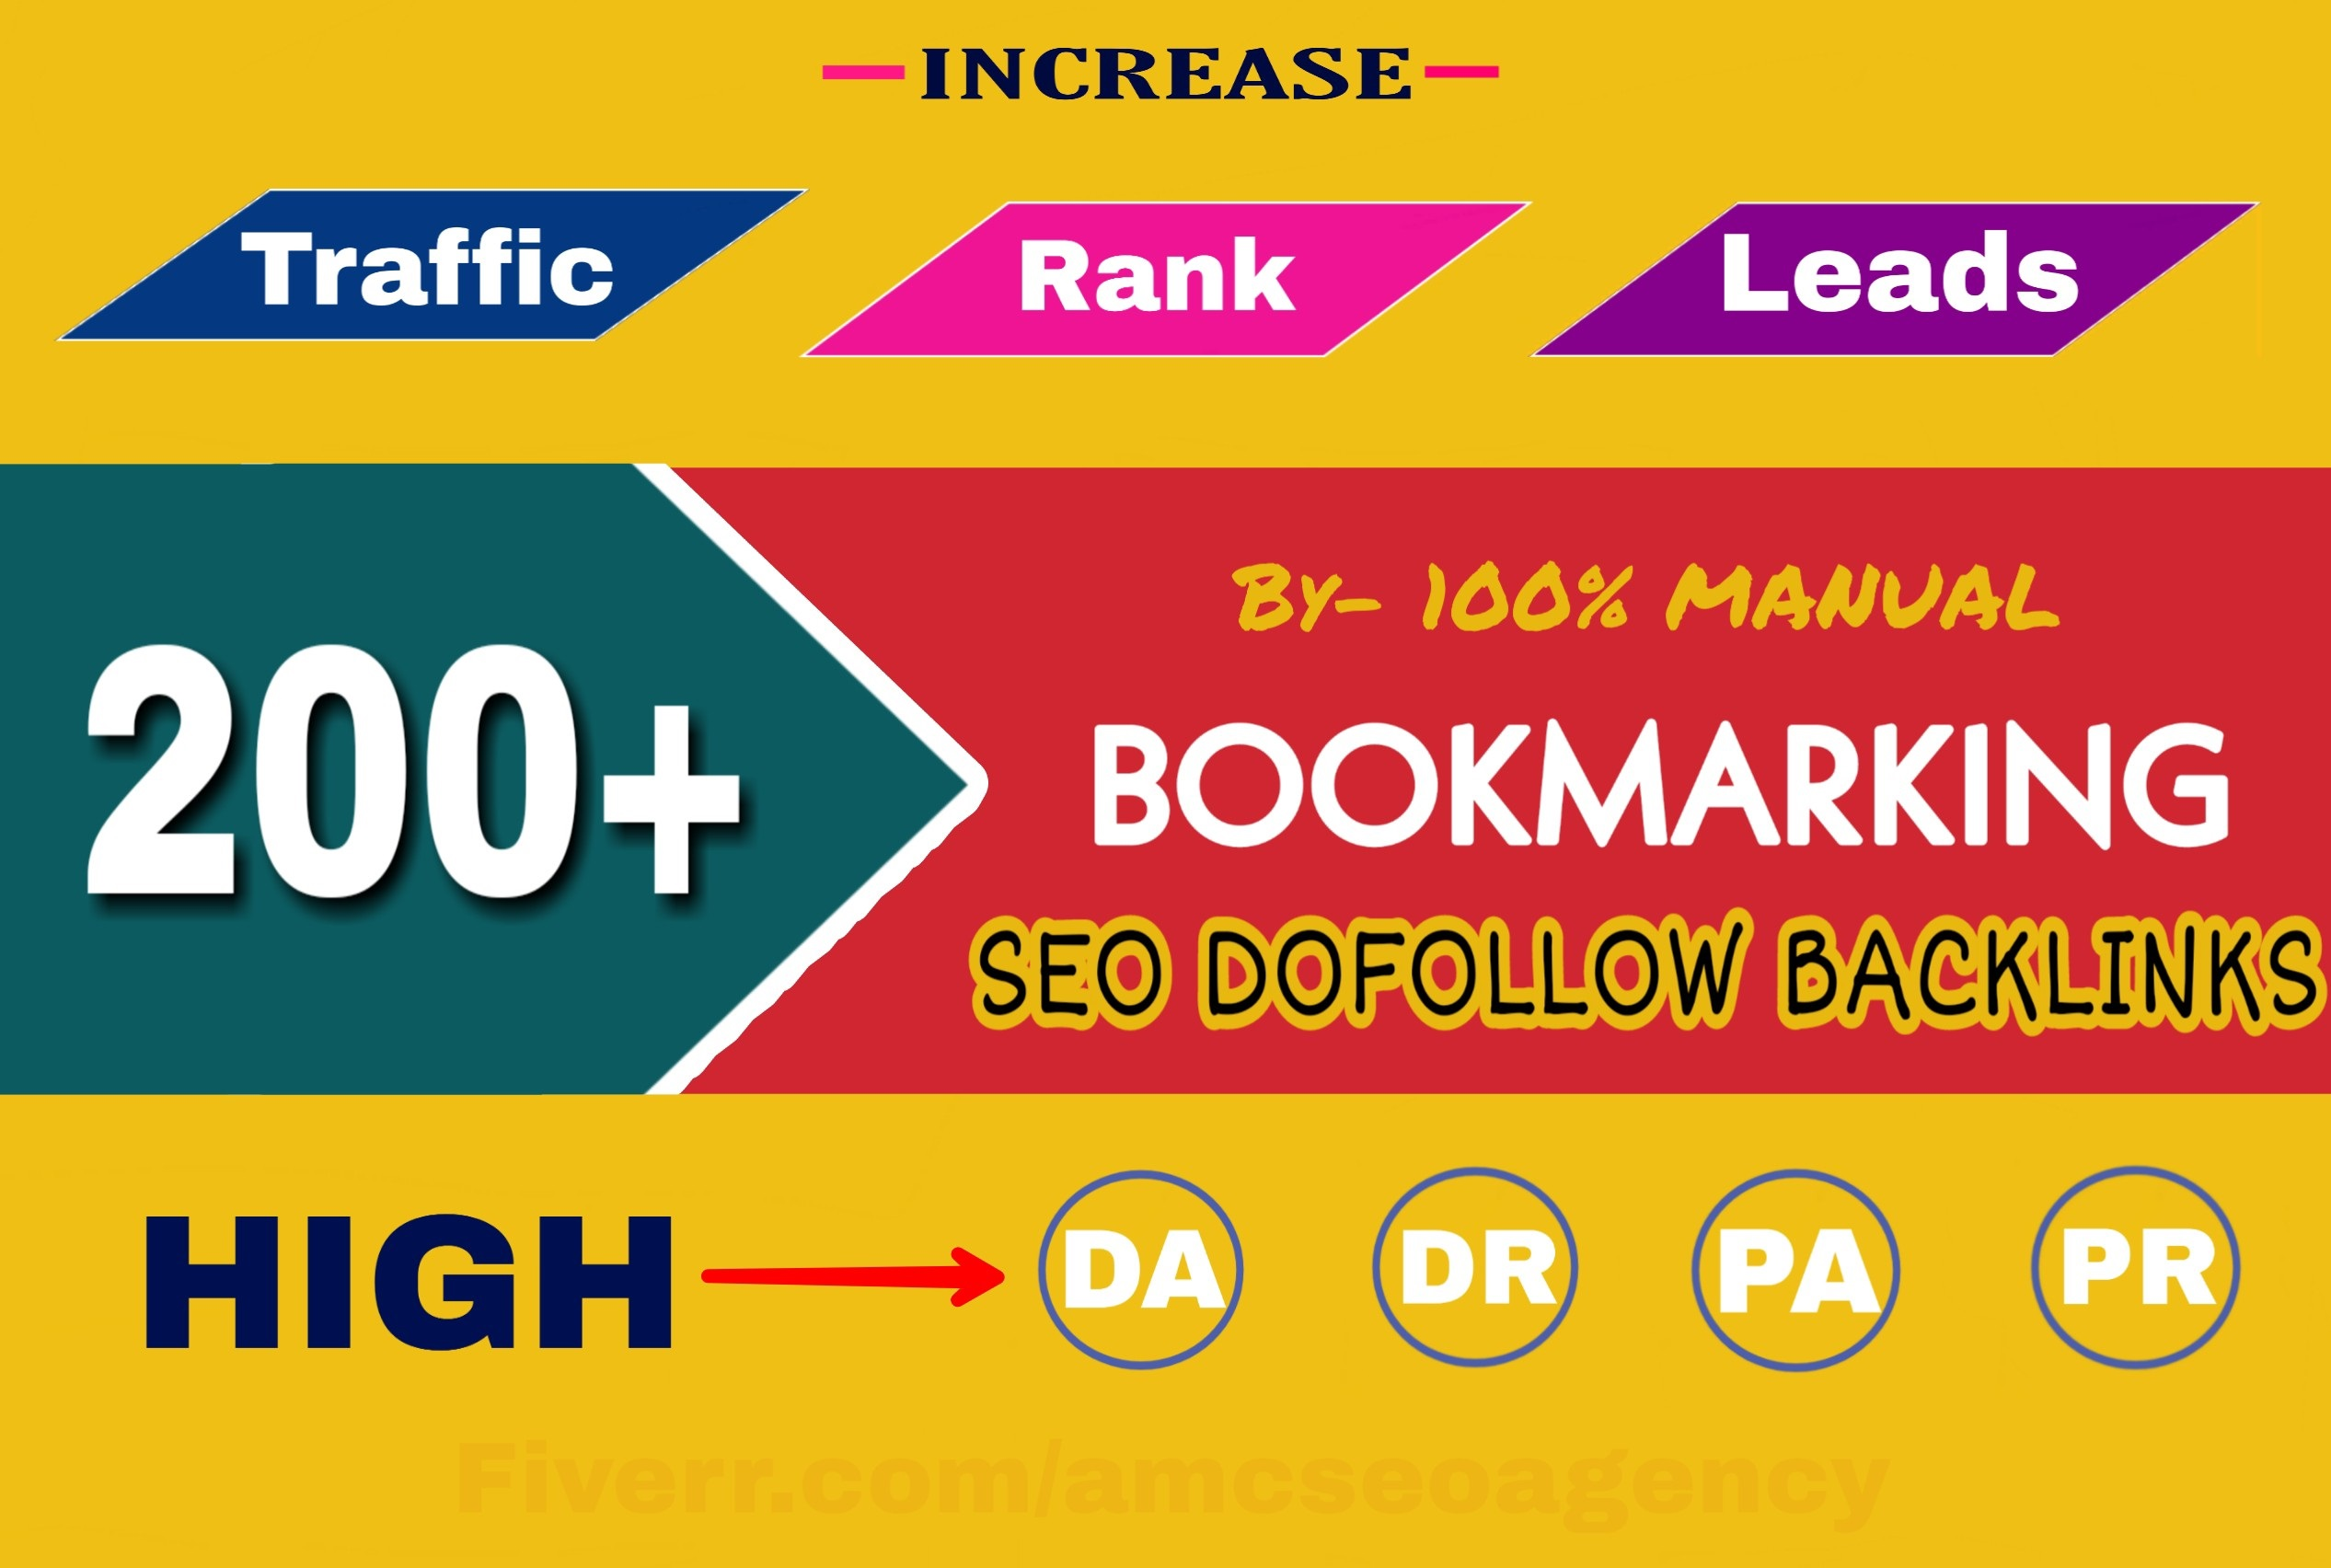 Build manually 200 quality bookmark submission SEO backlink for Google ranking